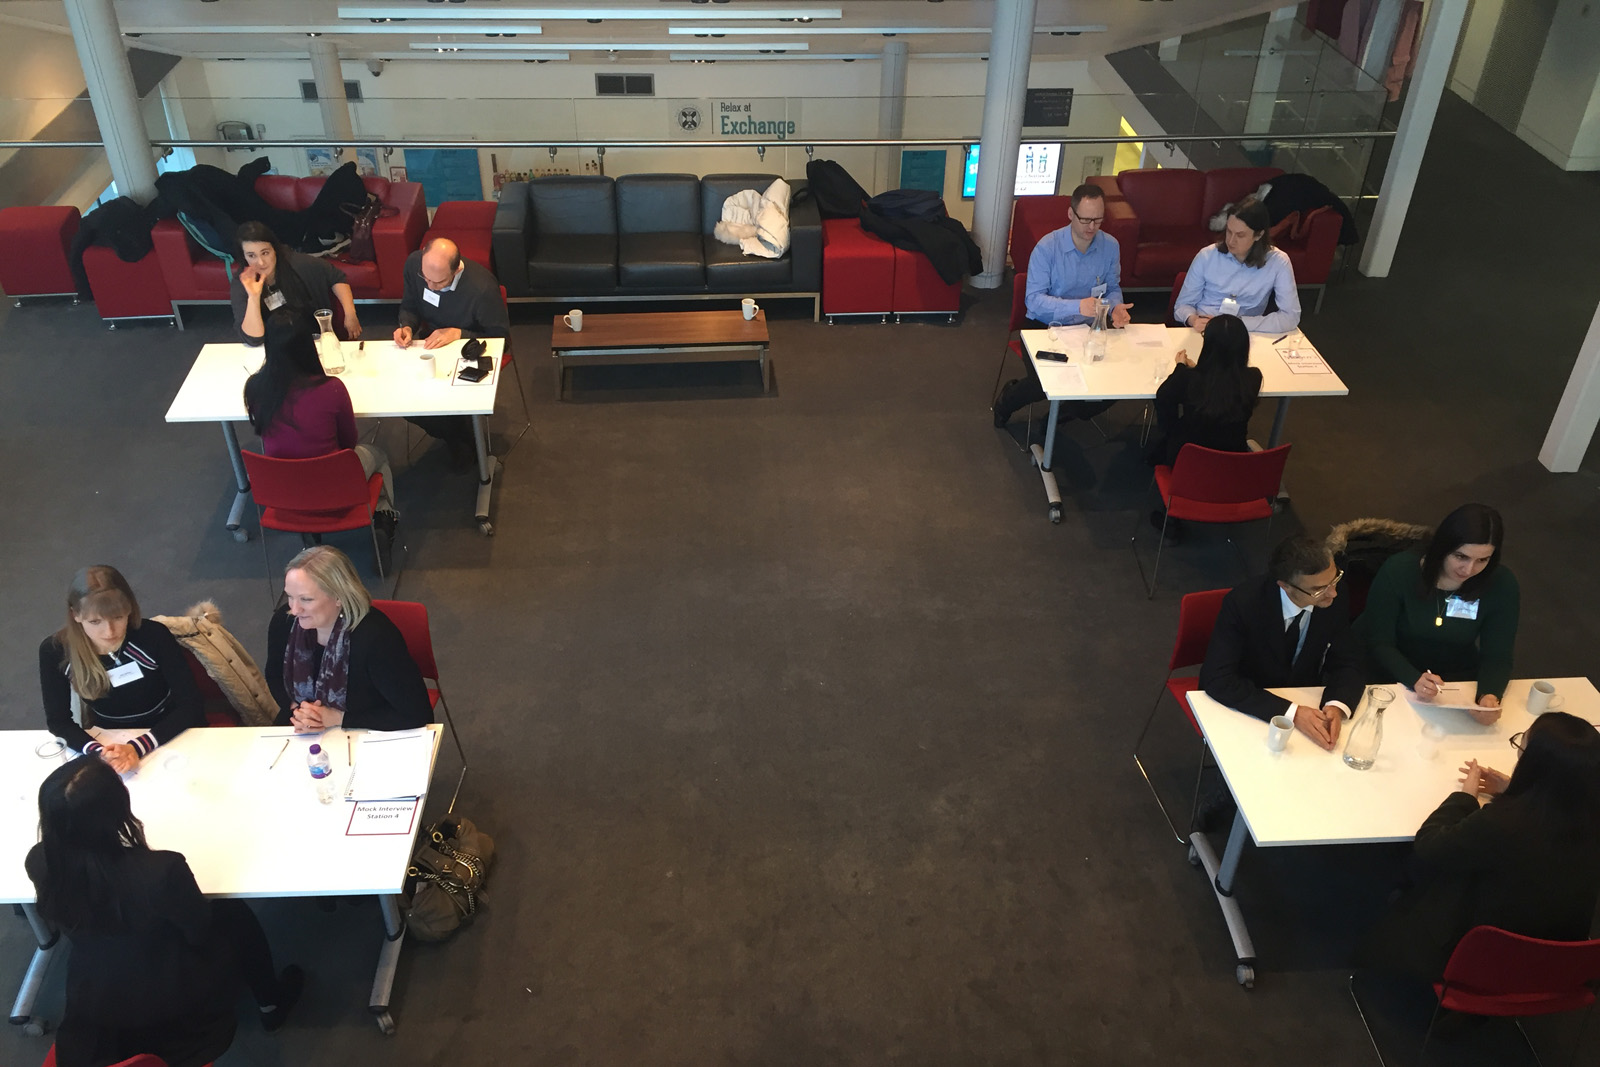 Moody's mock interviews on the concourse